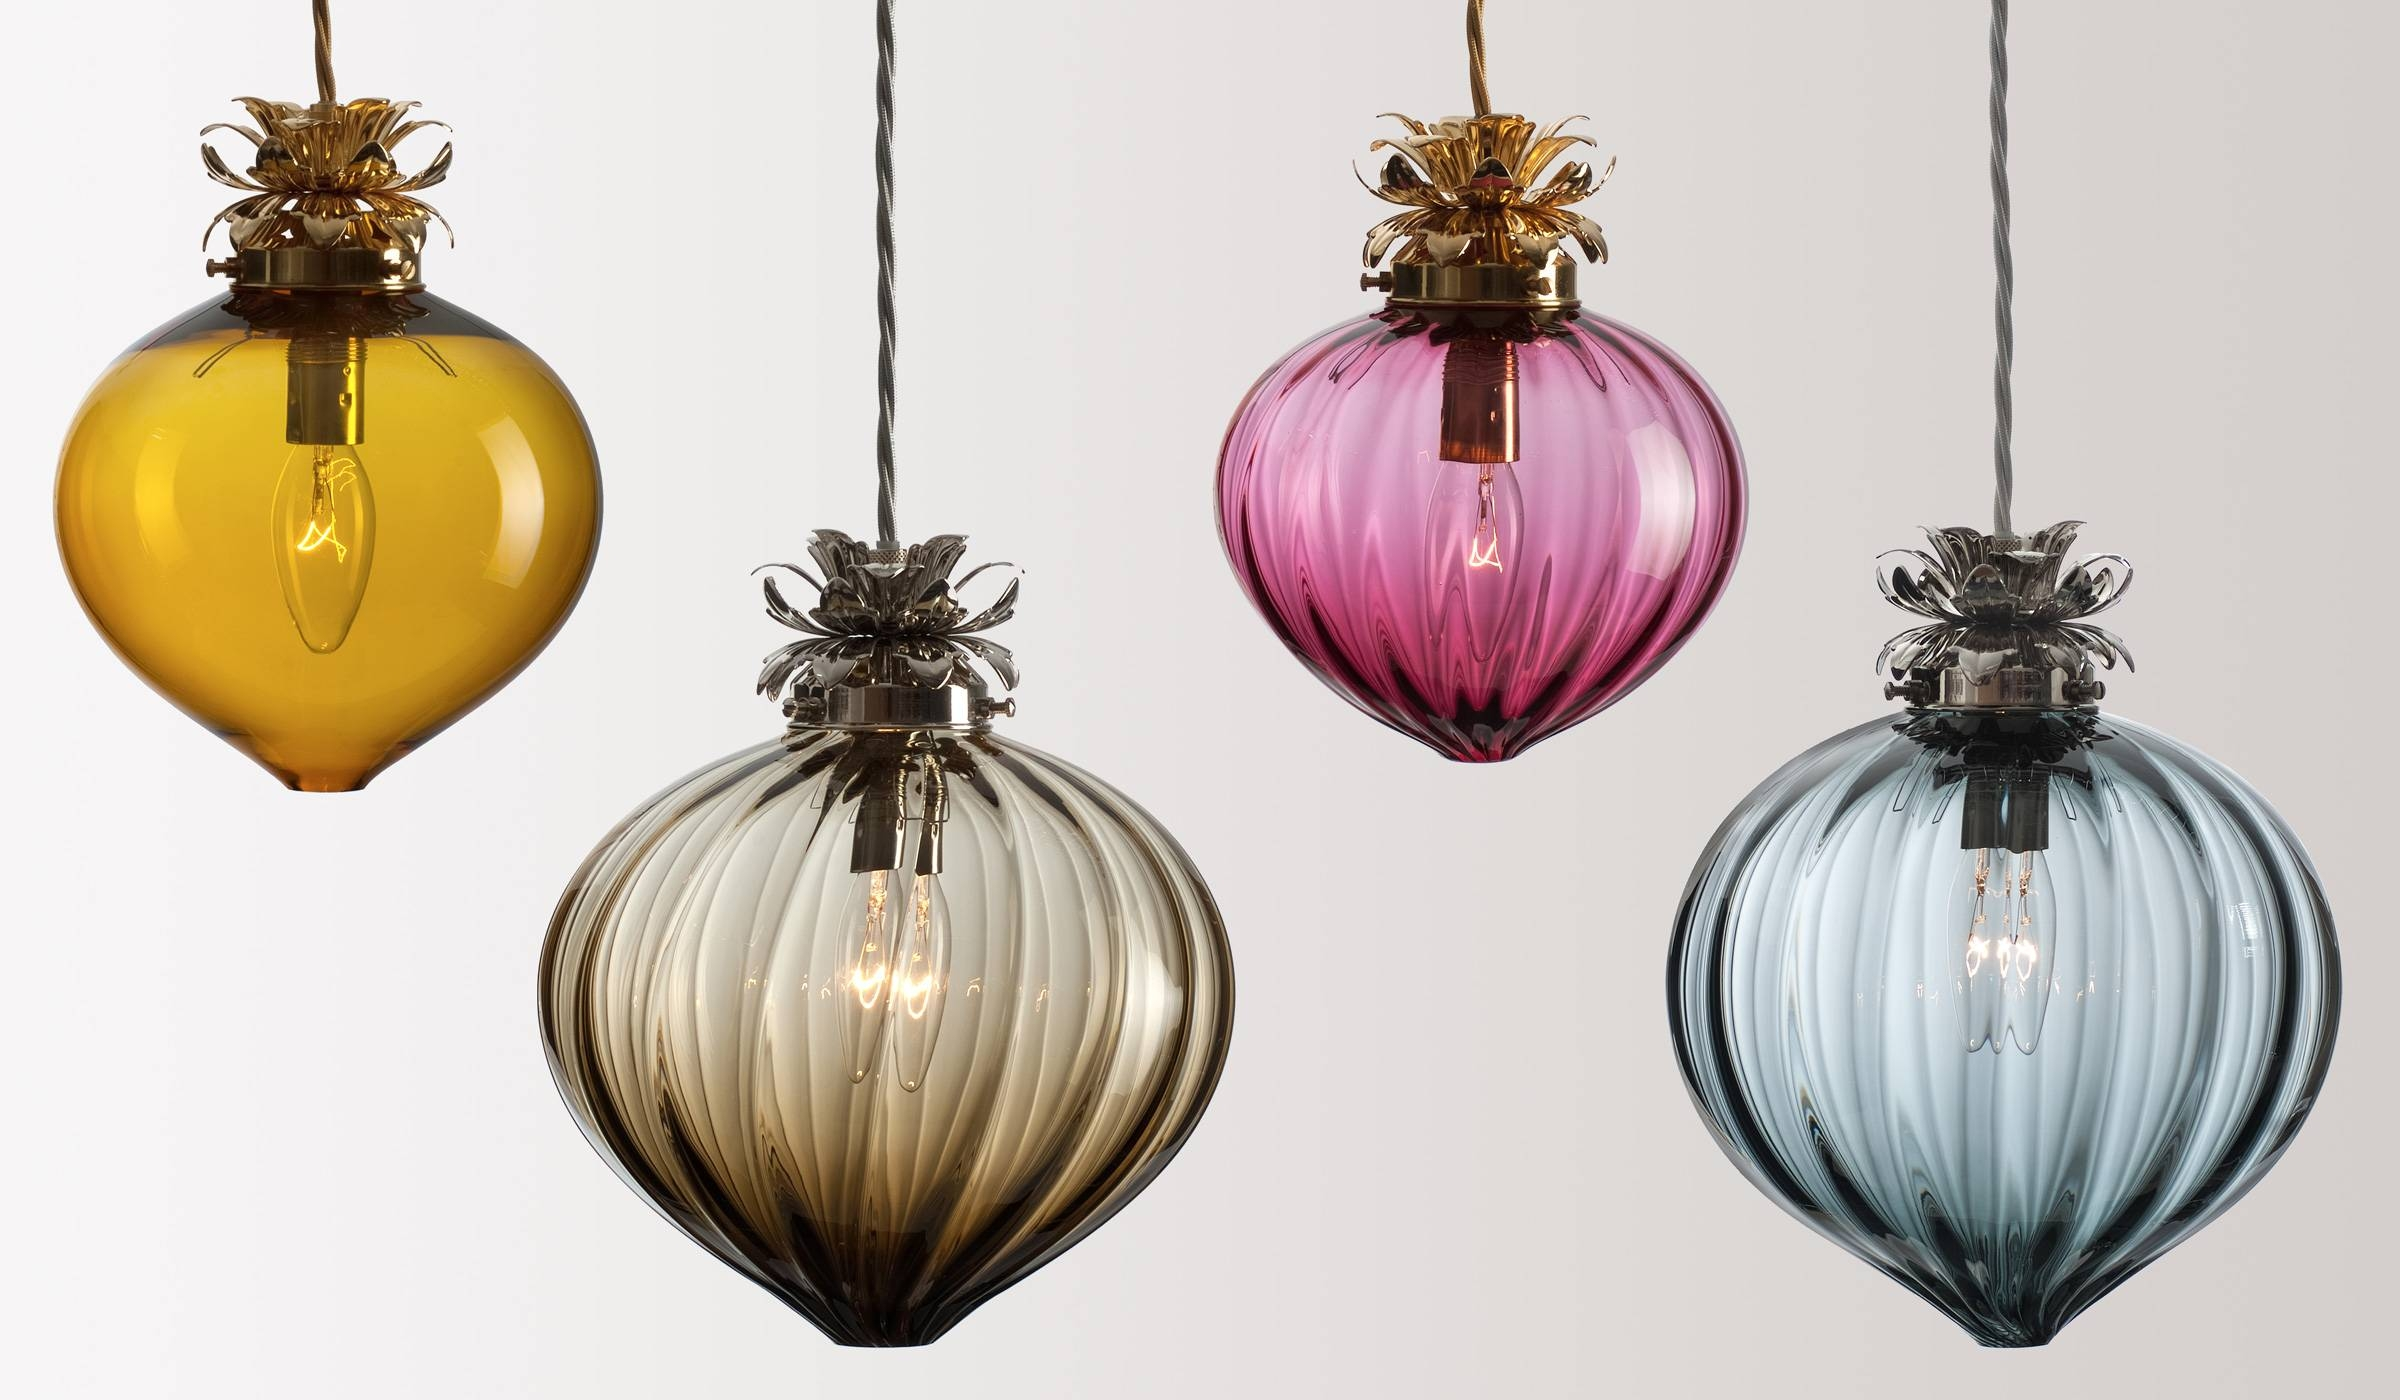 Glass Lighting - Rothschild & Bickers throughout Coloured Glass Pendant Lights (Image 7 of 15)